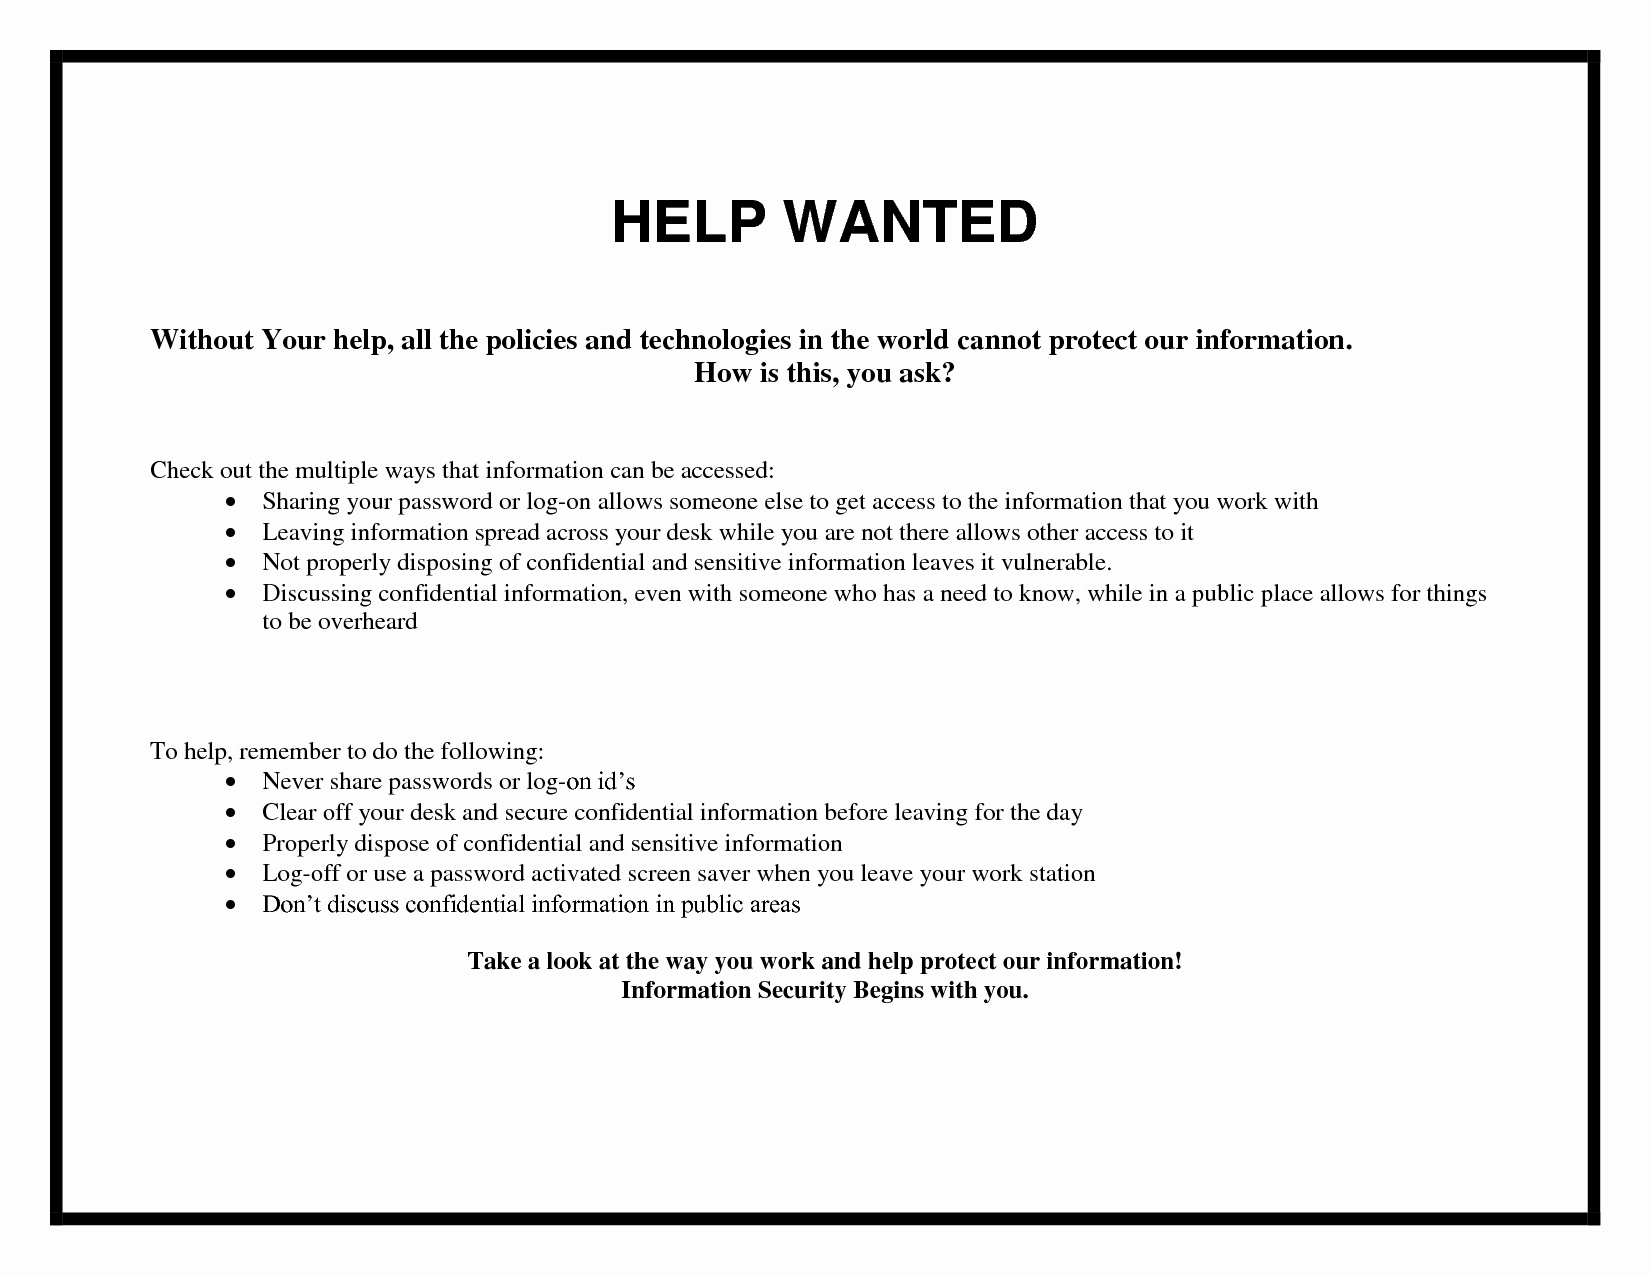 Help Wanted Ad Template Inspirational 5 Best Of Help Wanted Flyer Template Blank Wanted